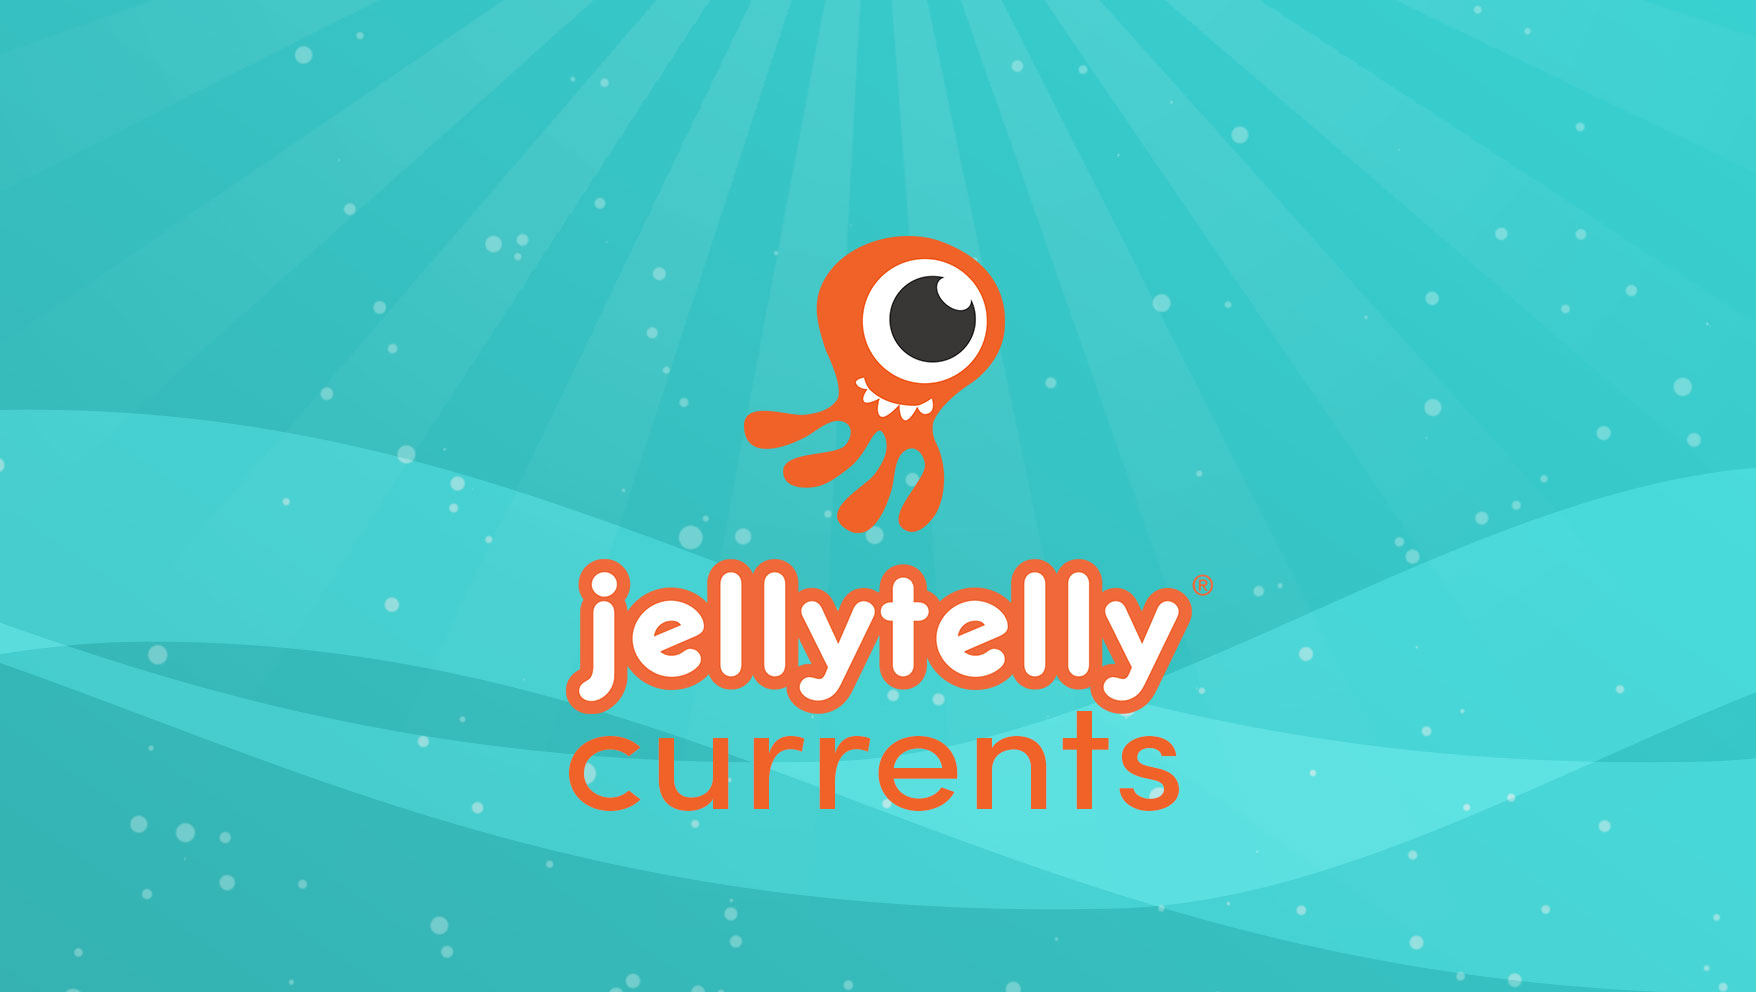 JellyTelly Currents - 5/5/17